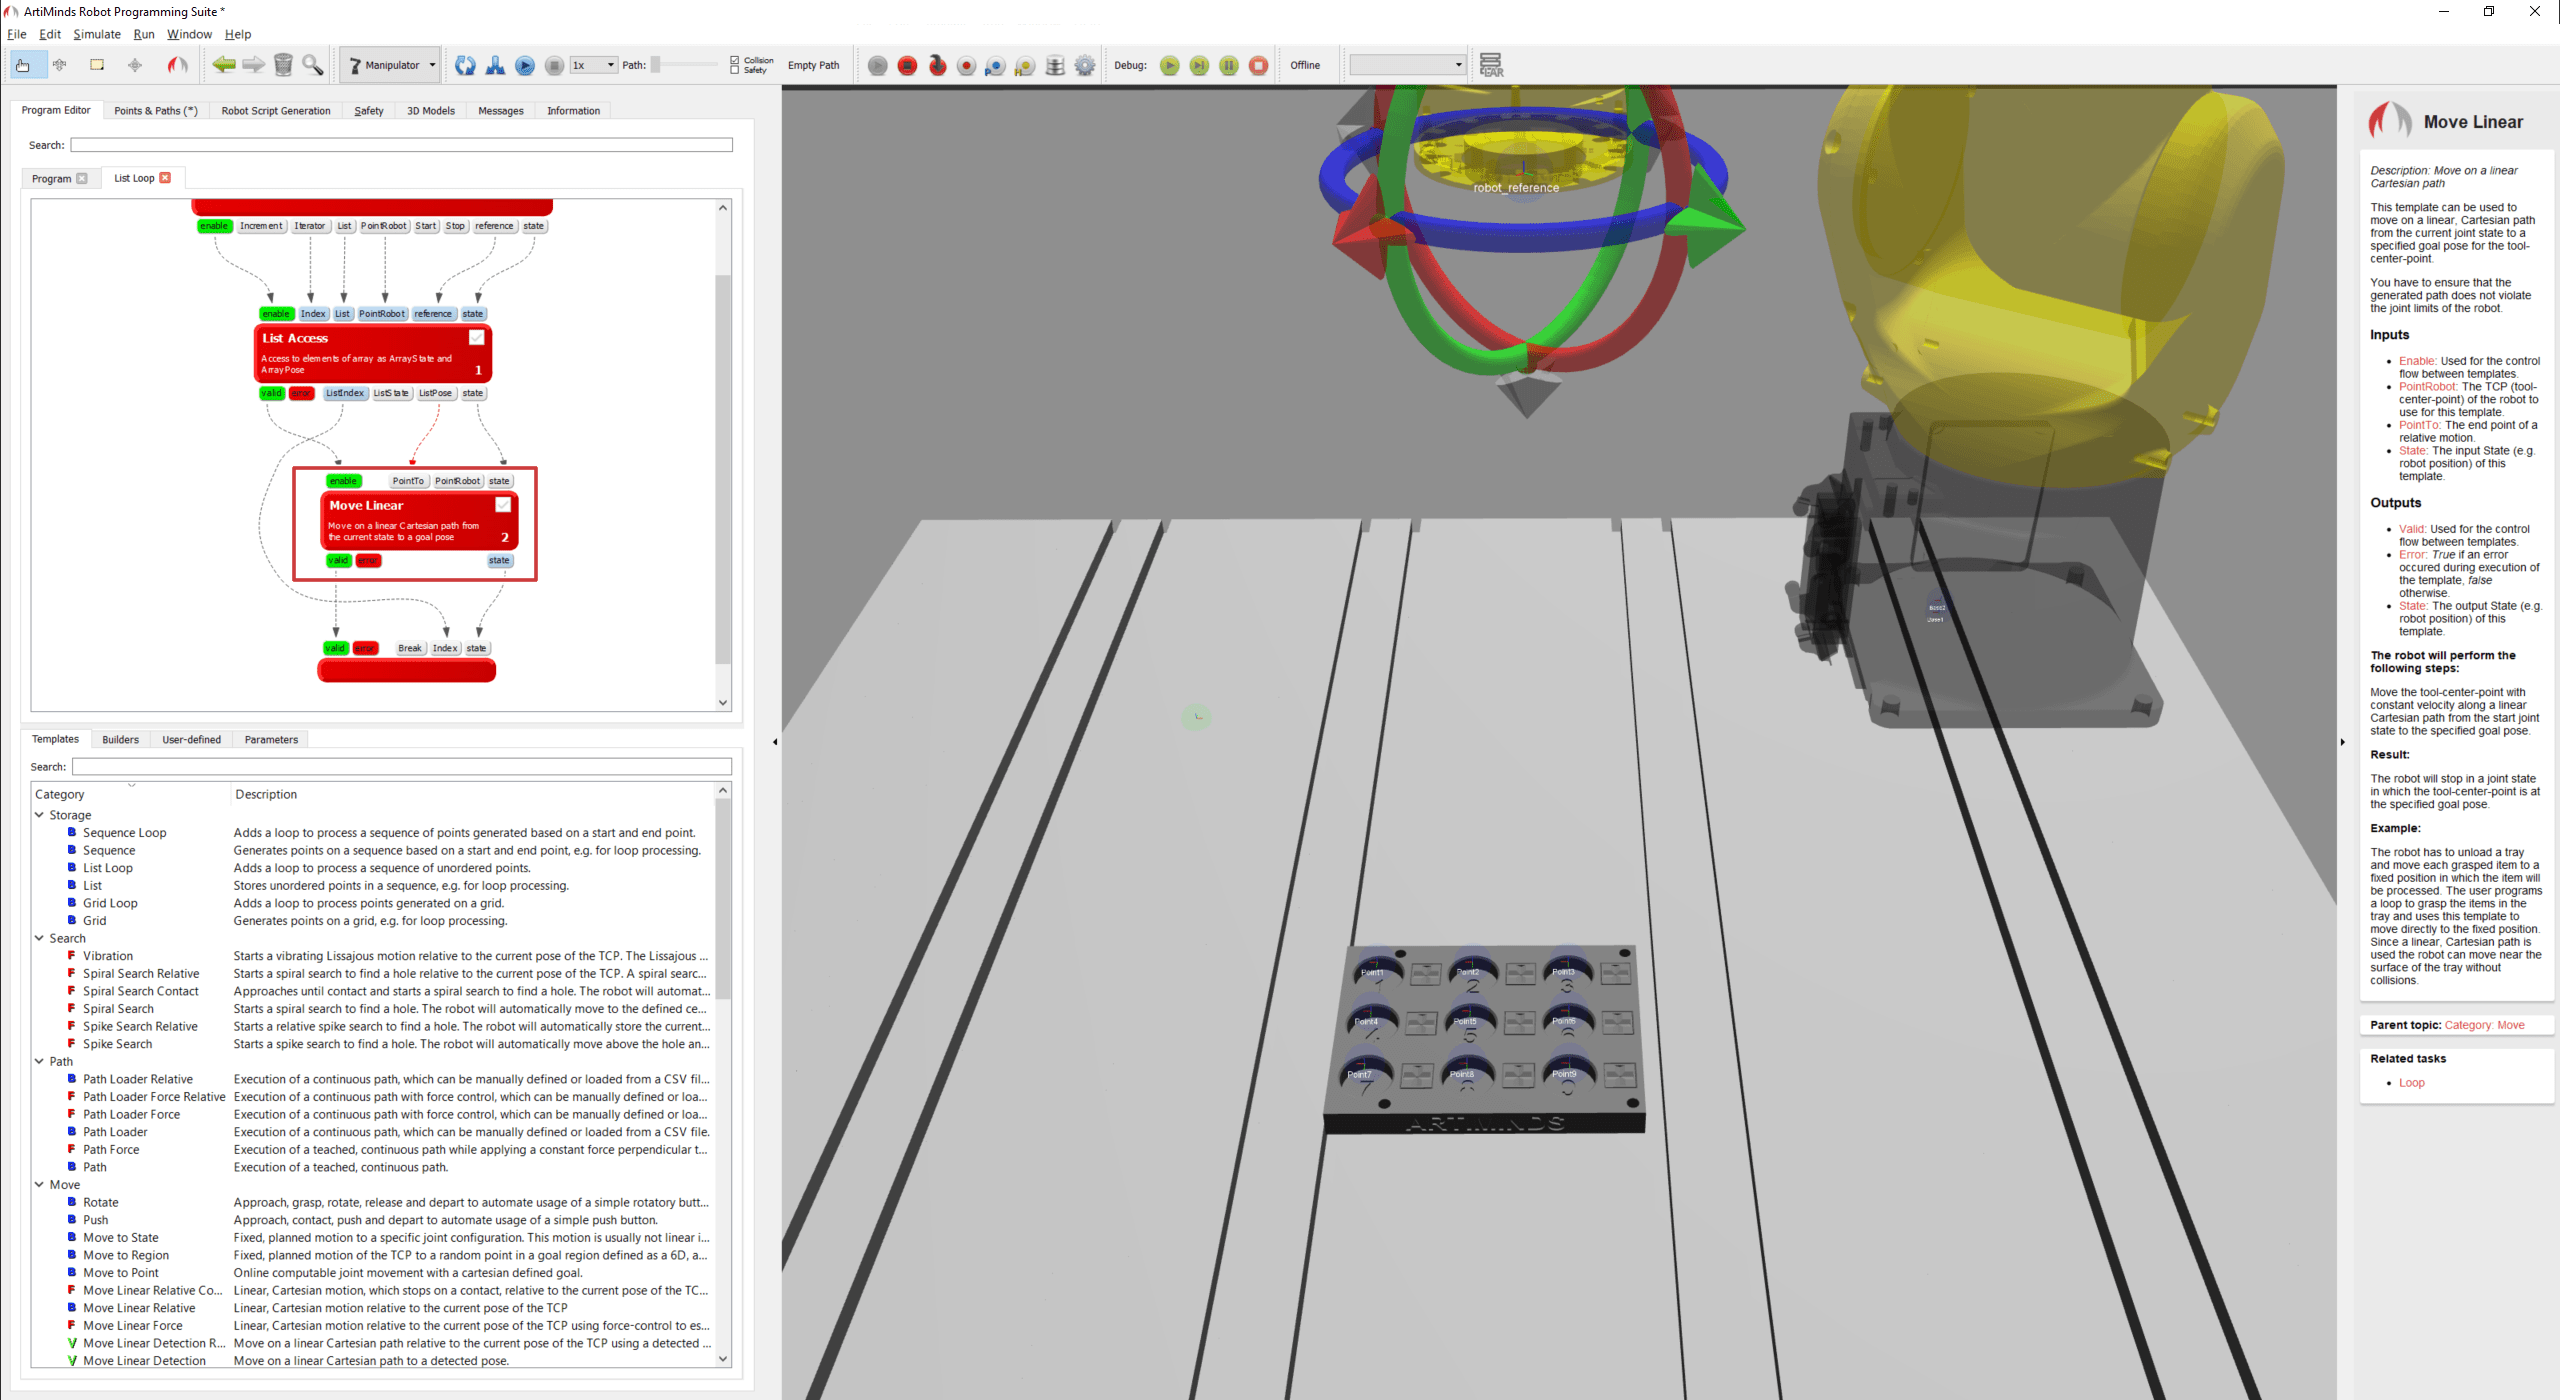 Inserting movement template